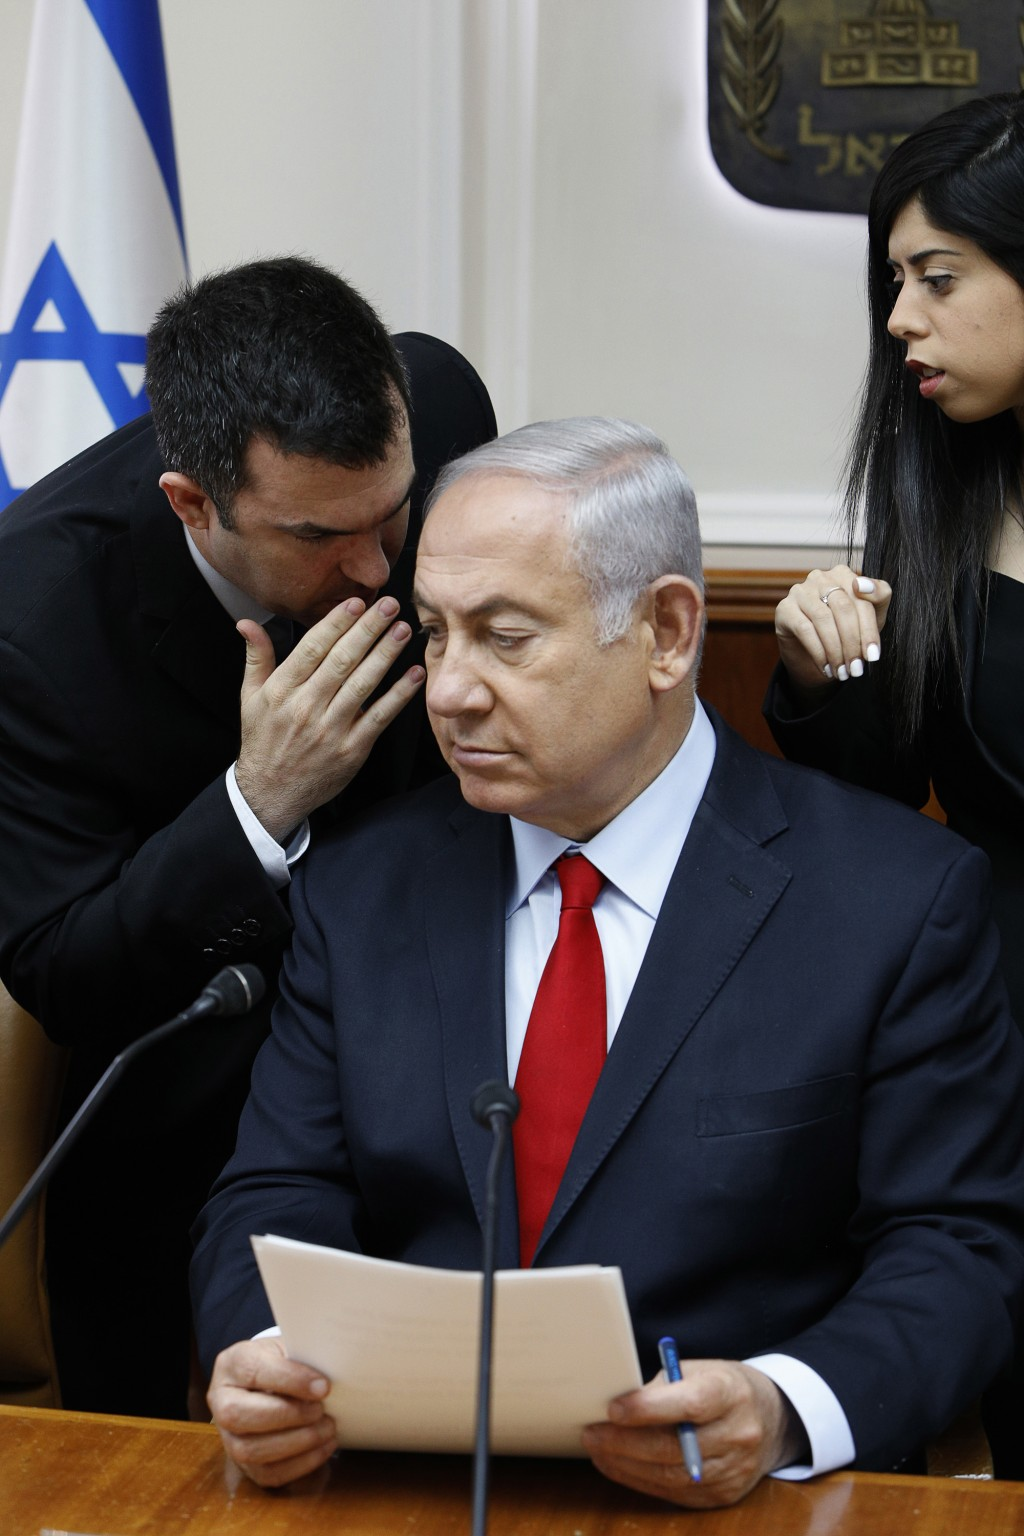 FILE - In this July 23, 2018 file photo, Israeli Prime Minister Benjamin Netanyahu listens to his spokesman David Keyes as he opens the weekly cabinet...